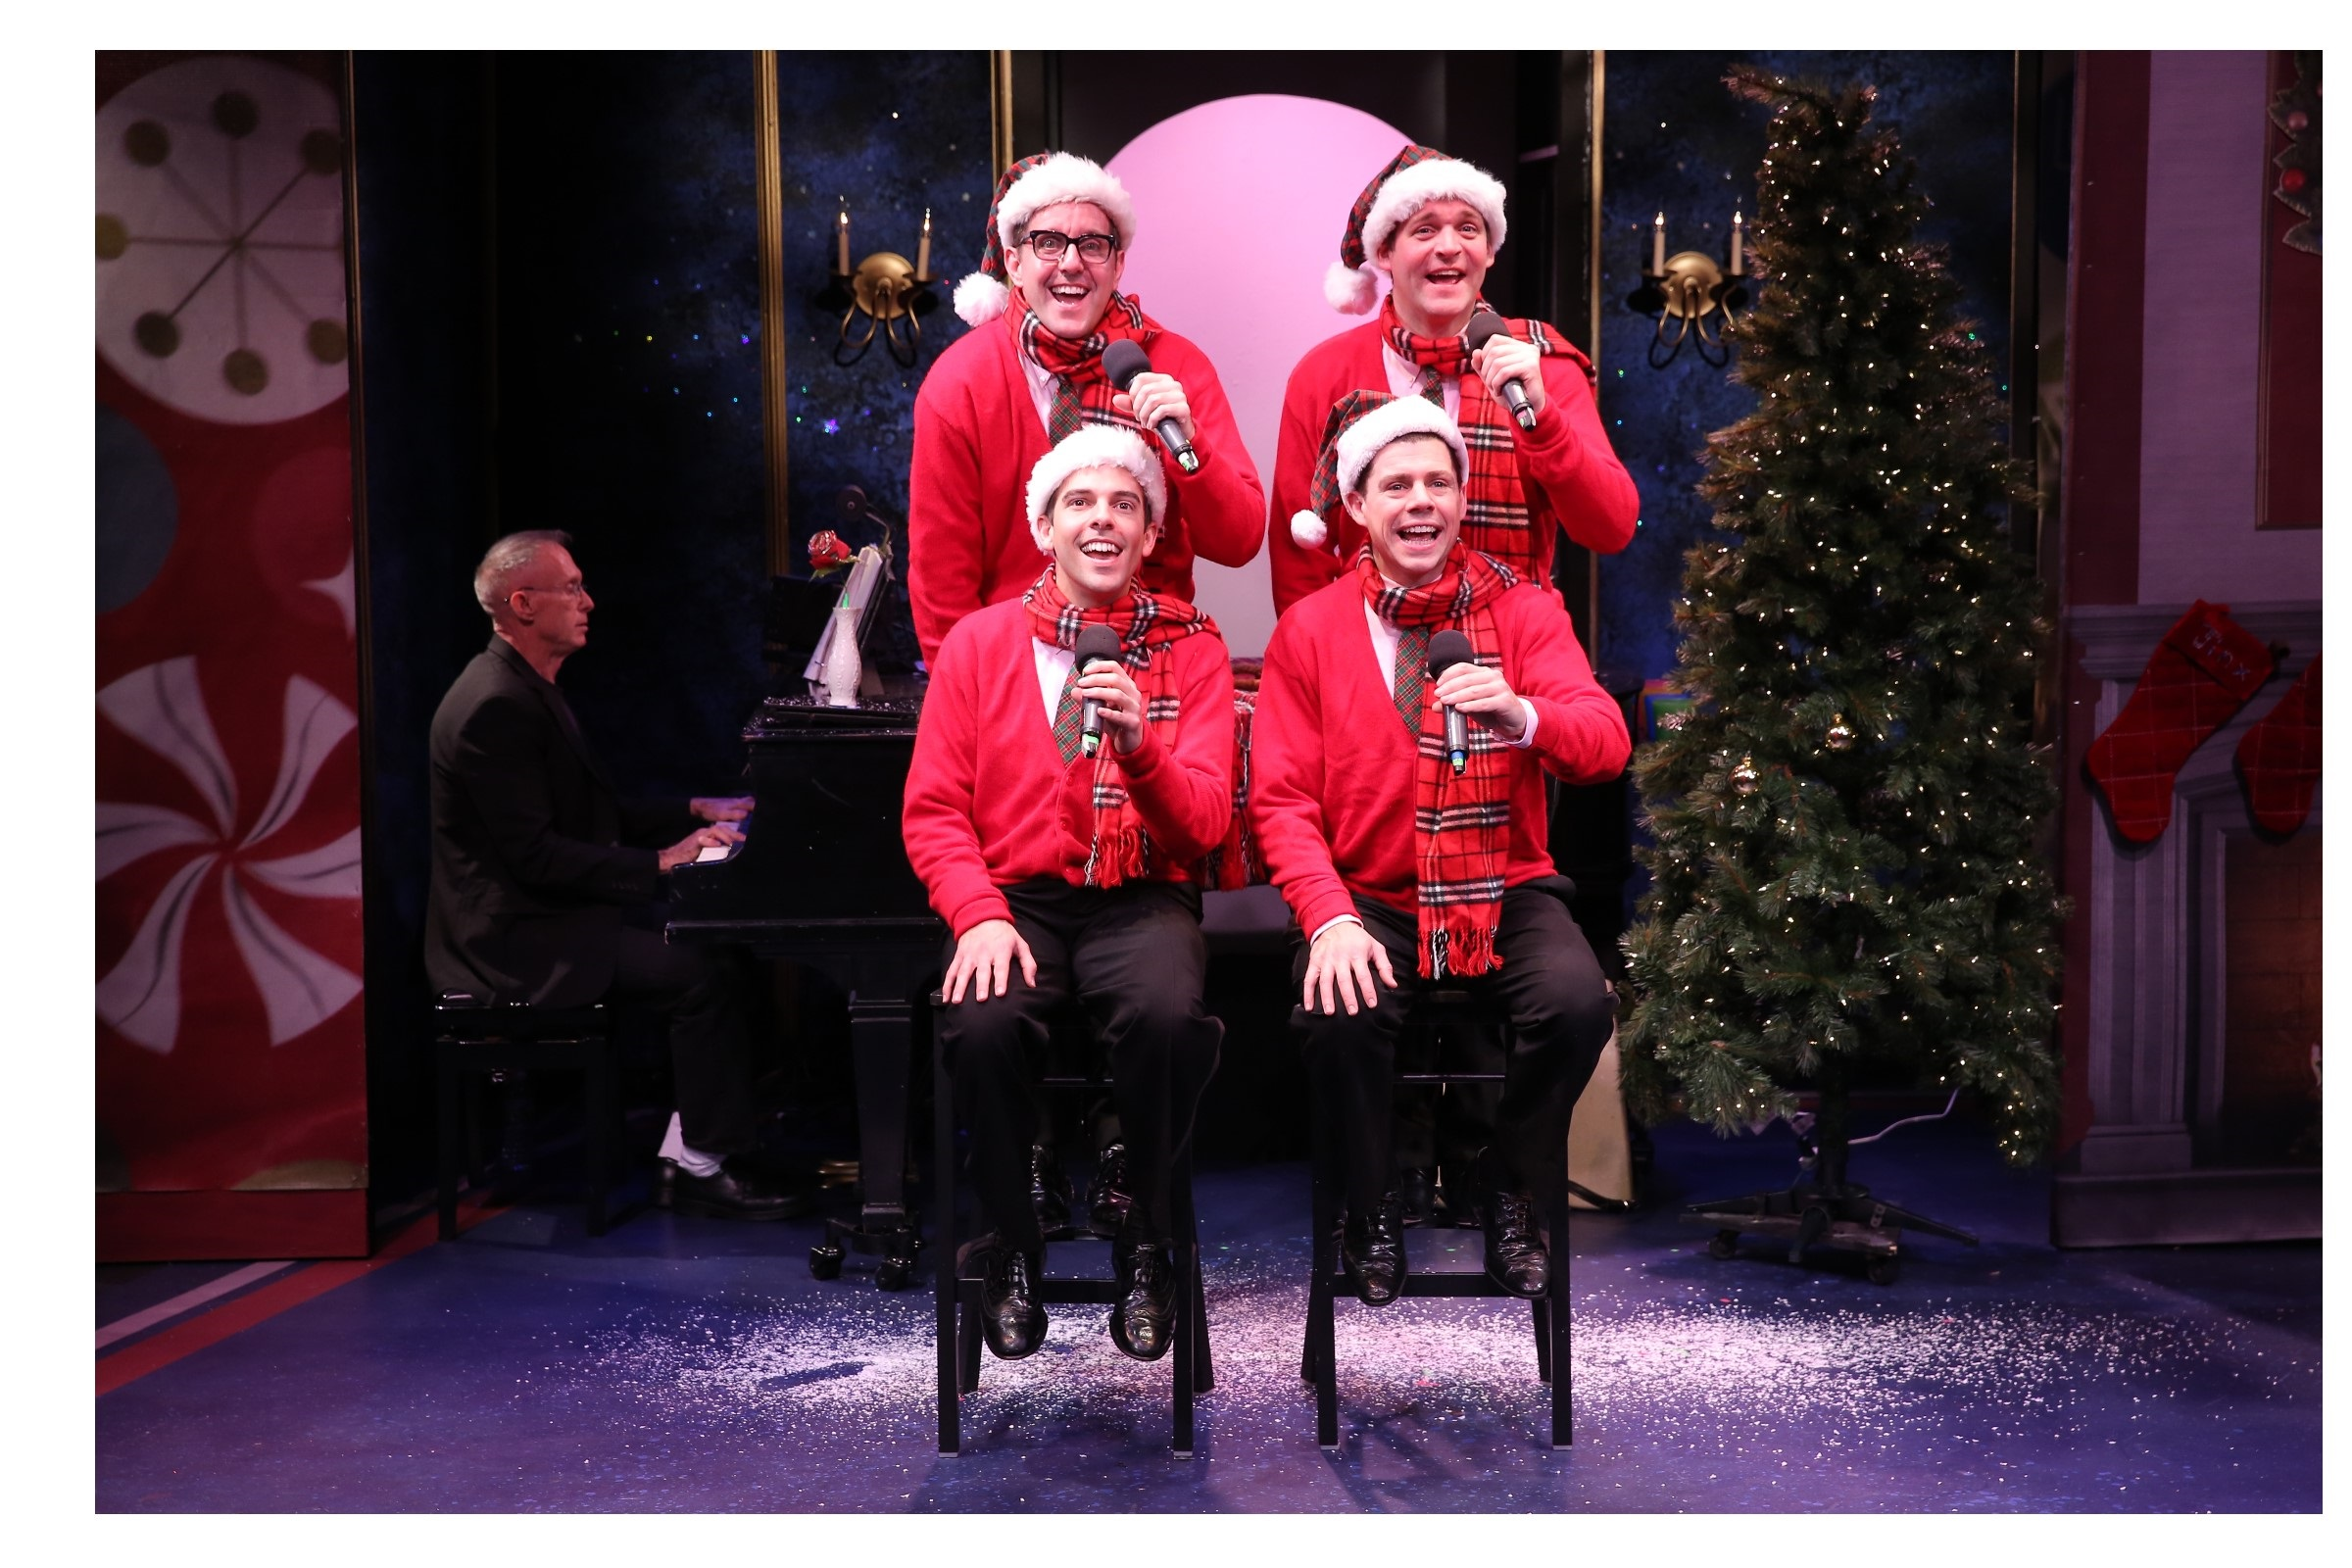 James Followell at the piano with (clockwise from top) John-Michael Zuerlein as Smudge, Bradley Beahen as Frankie, Ciaran McCarthy as Jinx, and Jose Luaces as Sparky, in PLAID TIDINGS.  Photo Credit:  Carol Rosegg.